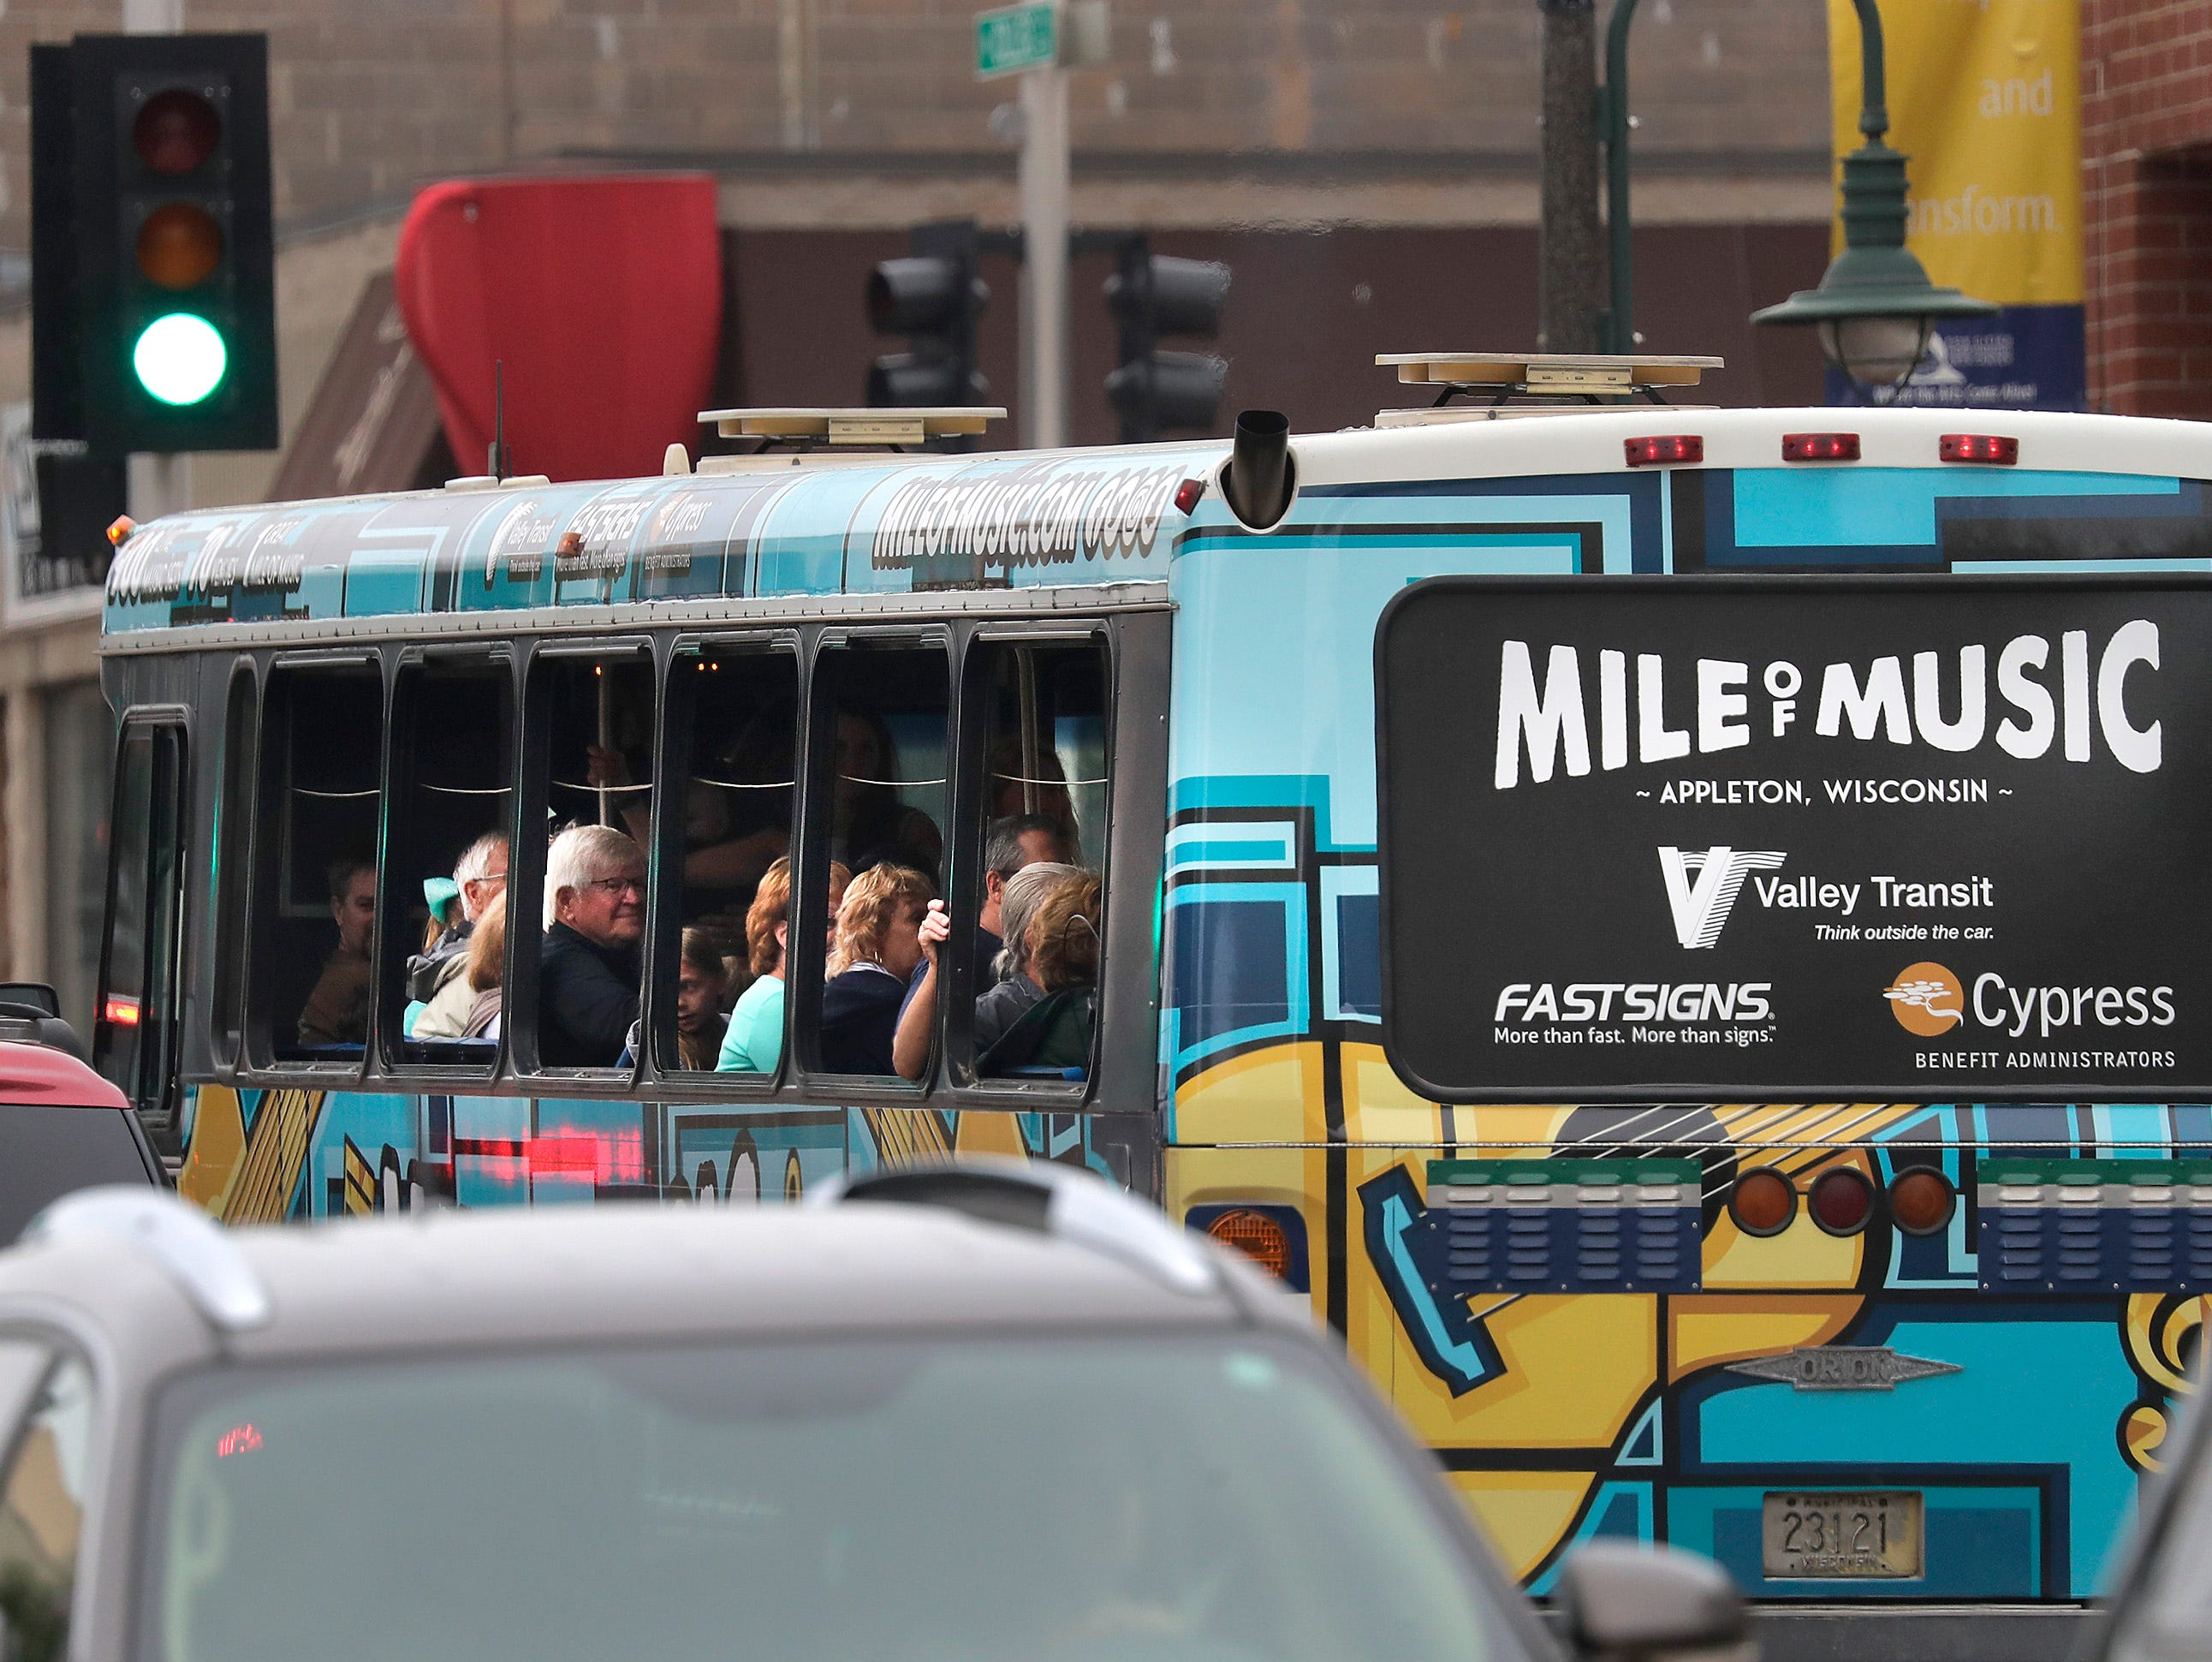 The Mile of Music bus rolls thropugh downtown during the Mile of Music festival Thursday, August 2, 2018, in Appleton, Wis. Wm. Glasheen/USA TODAY NETWORK-Wisconsin